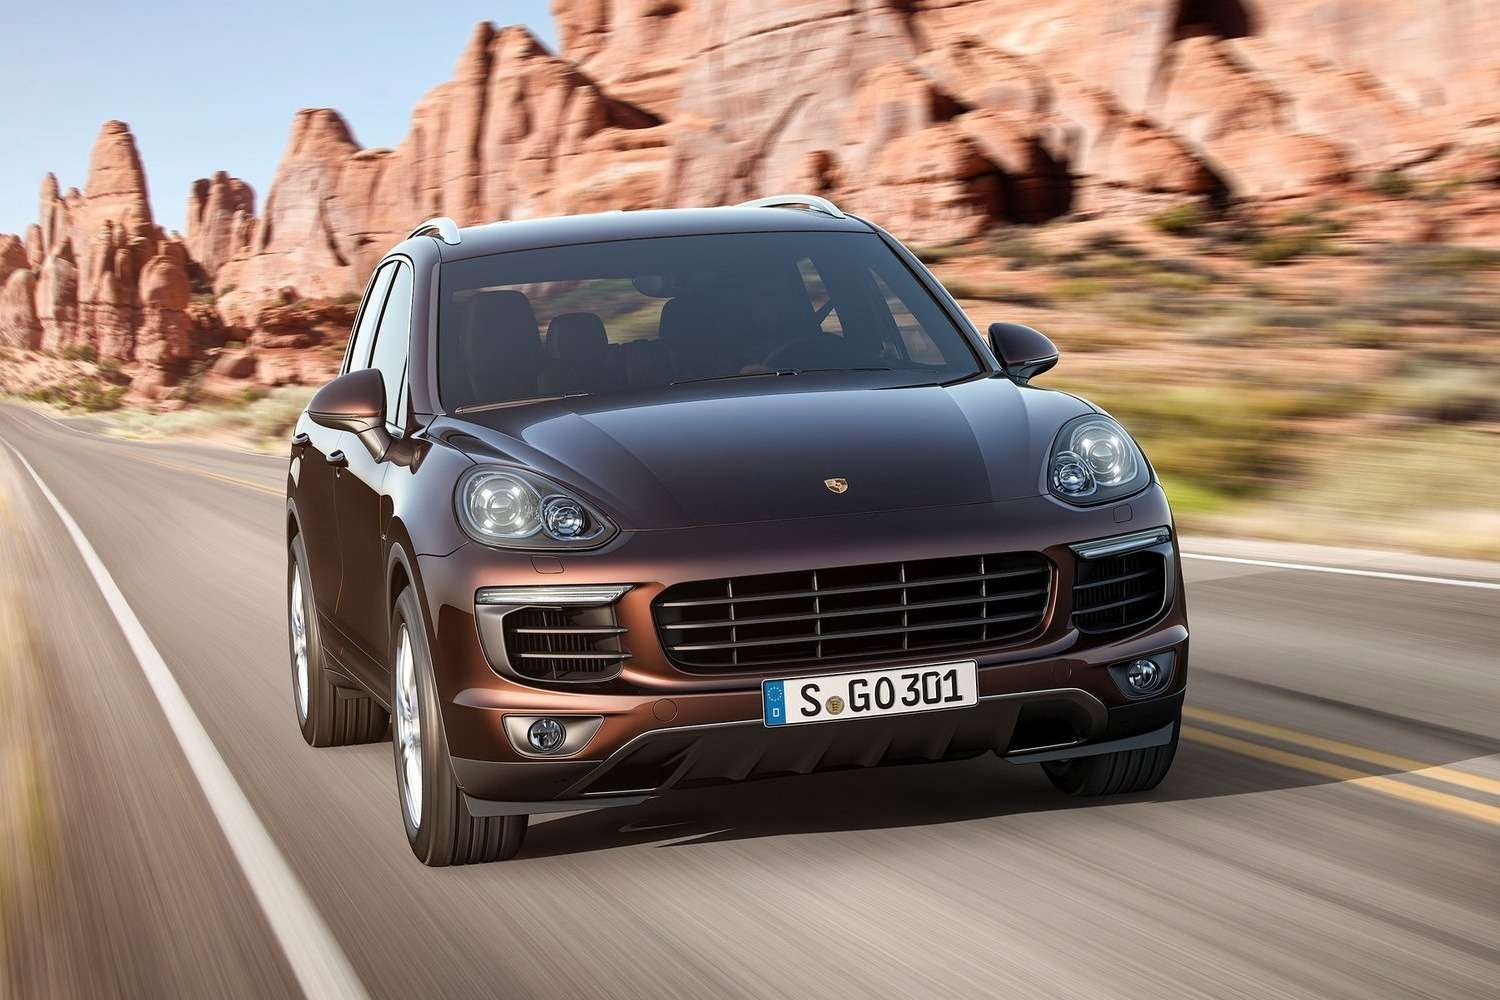 Porsche-Cayenne_2015_1600x1200_wallpaper_03